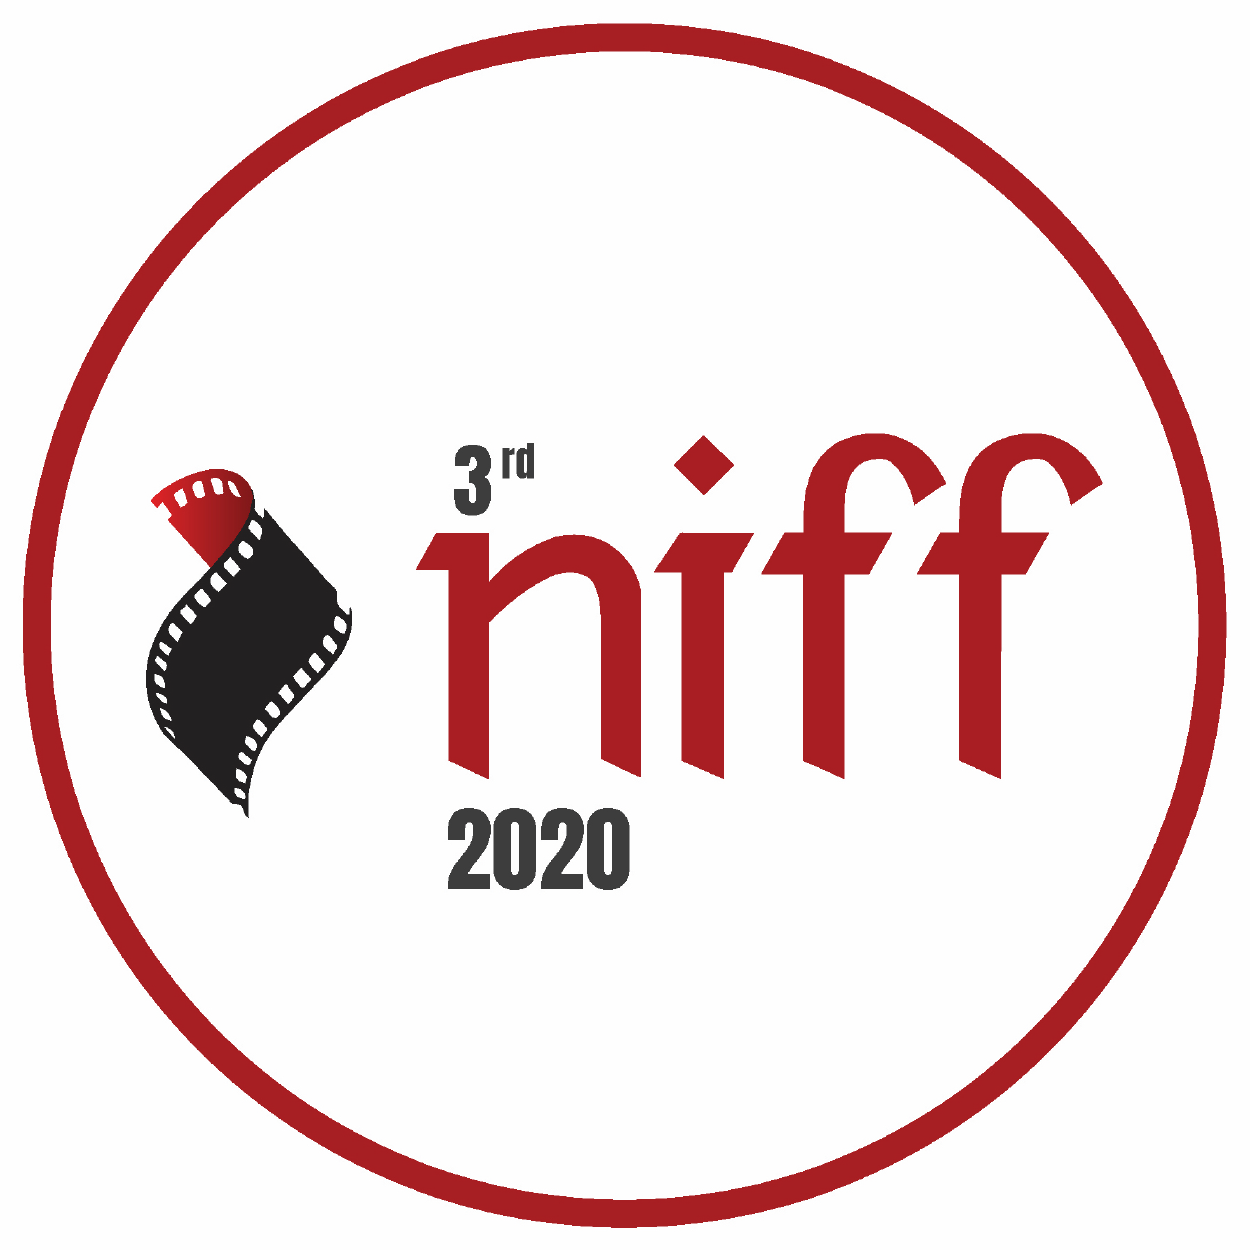 Nepal International Film Festival 2020 2020尼泊尔国际电影节